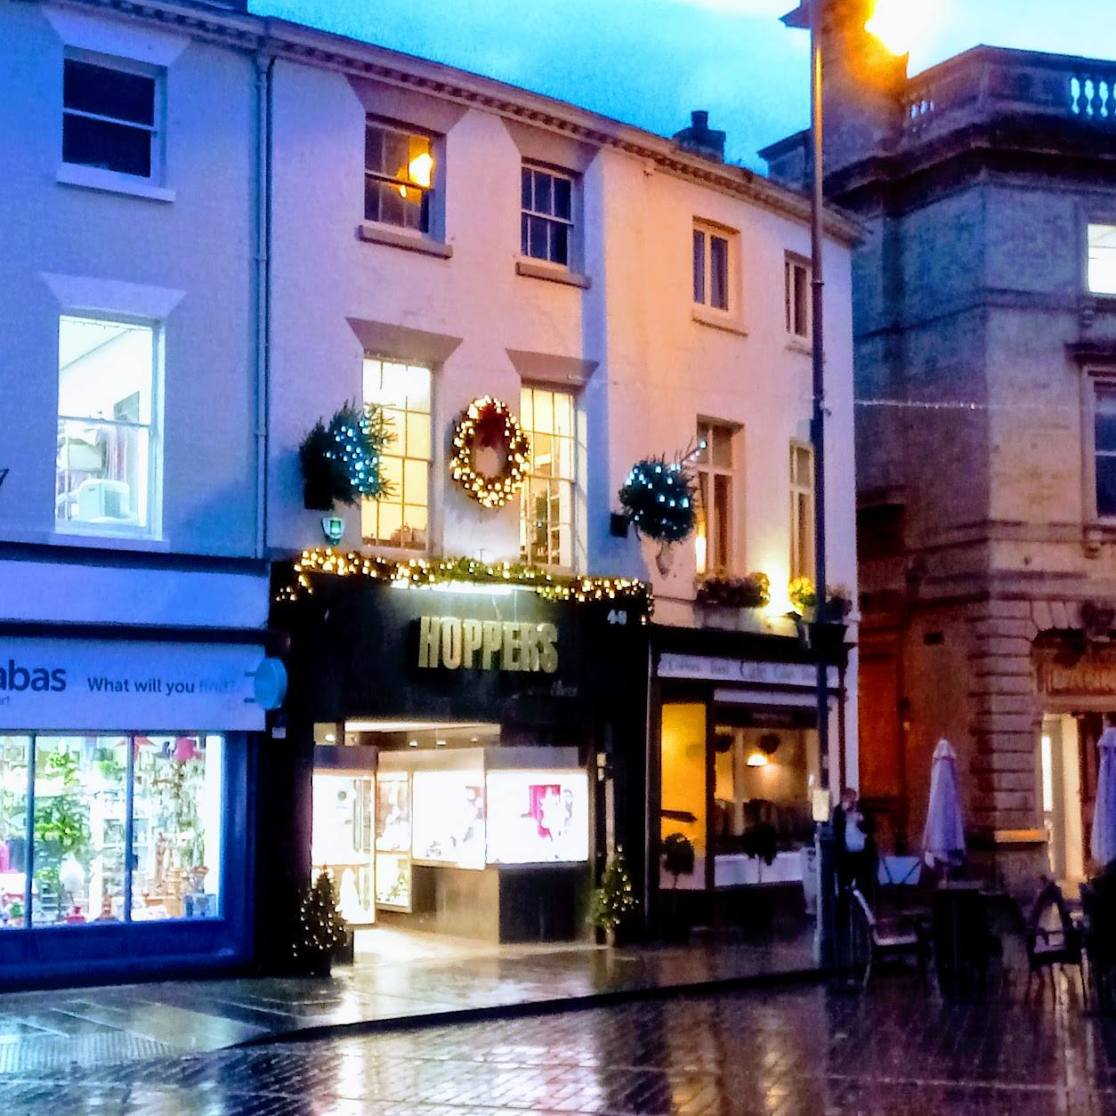 Business Sponsors: Town centre shops sponsoring trees and festive displays